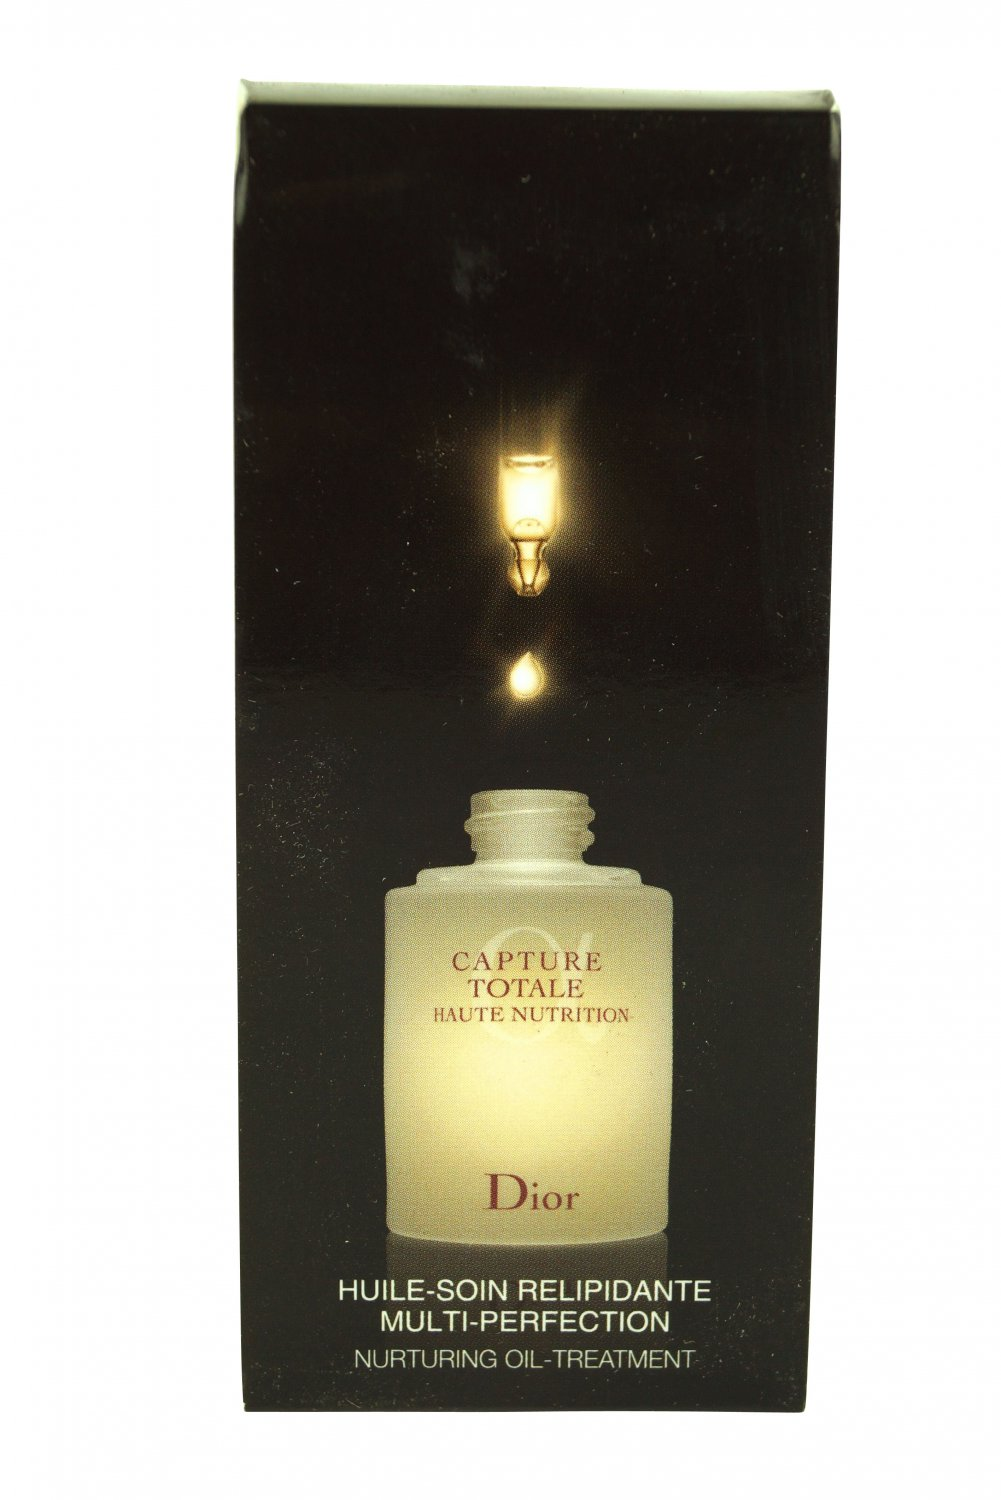 Christian Dior Capture Totale Multi-Perfection Nurturing Oil-Treatment 0.5 oz